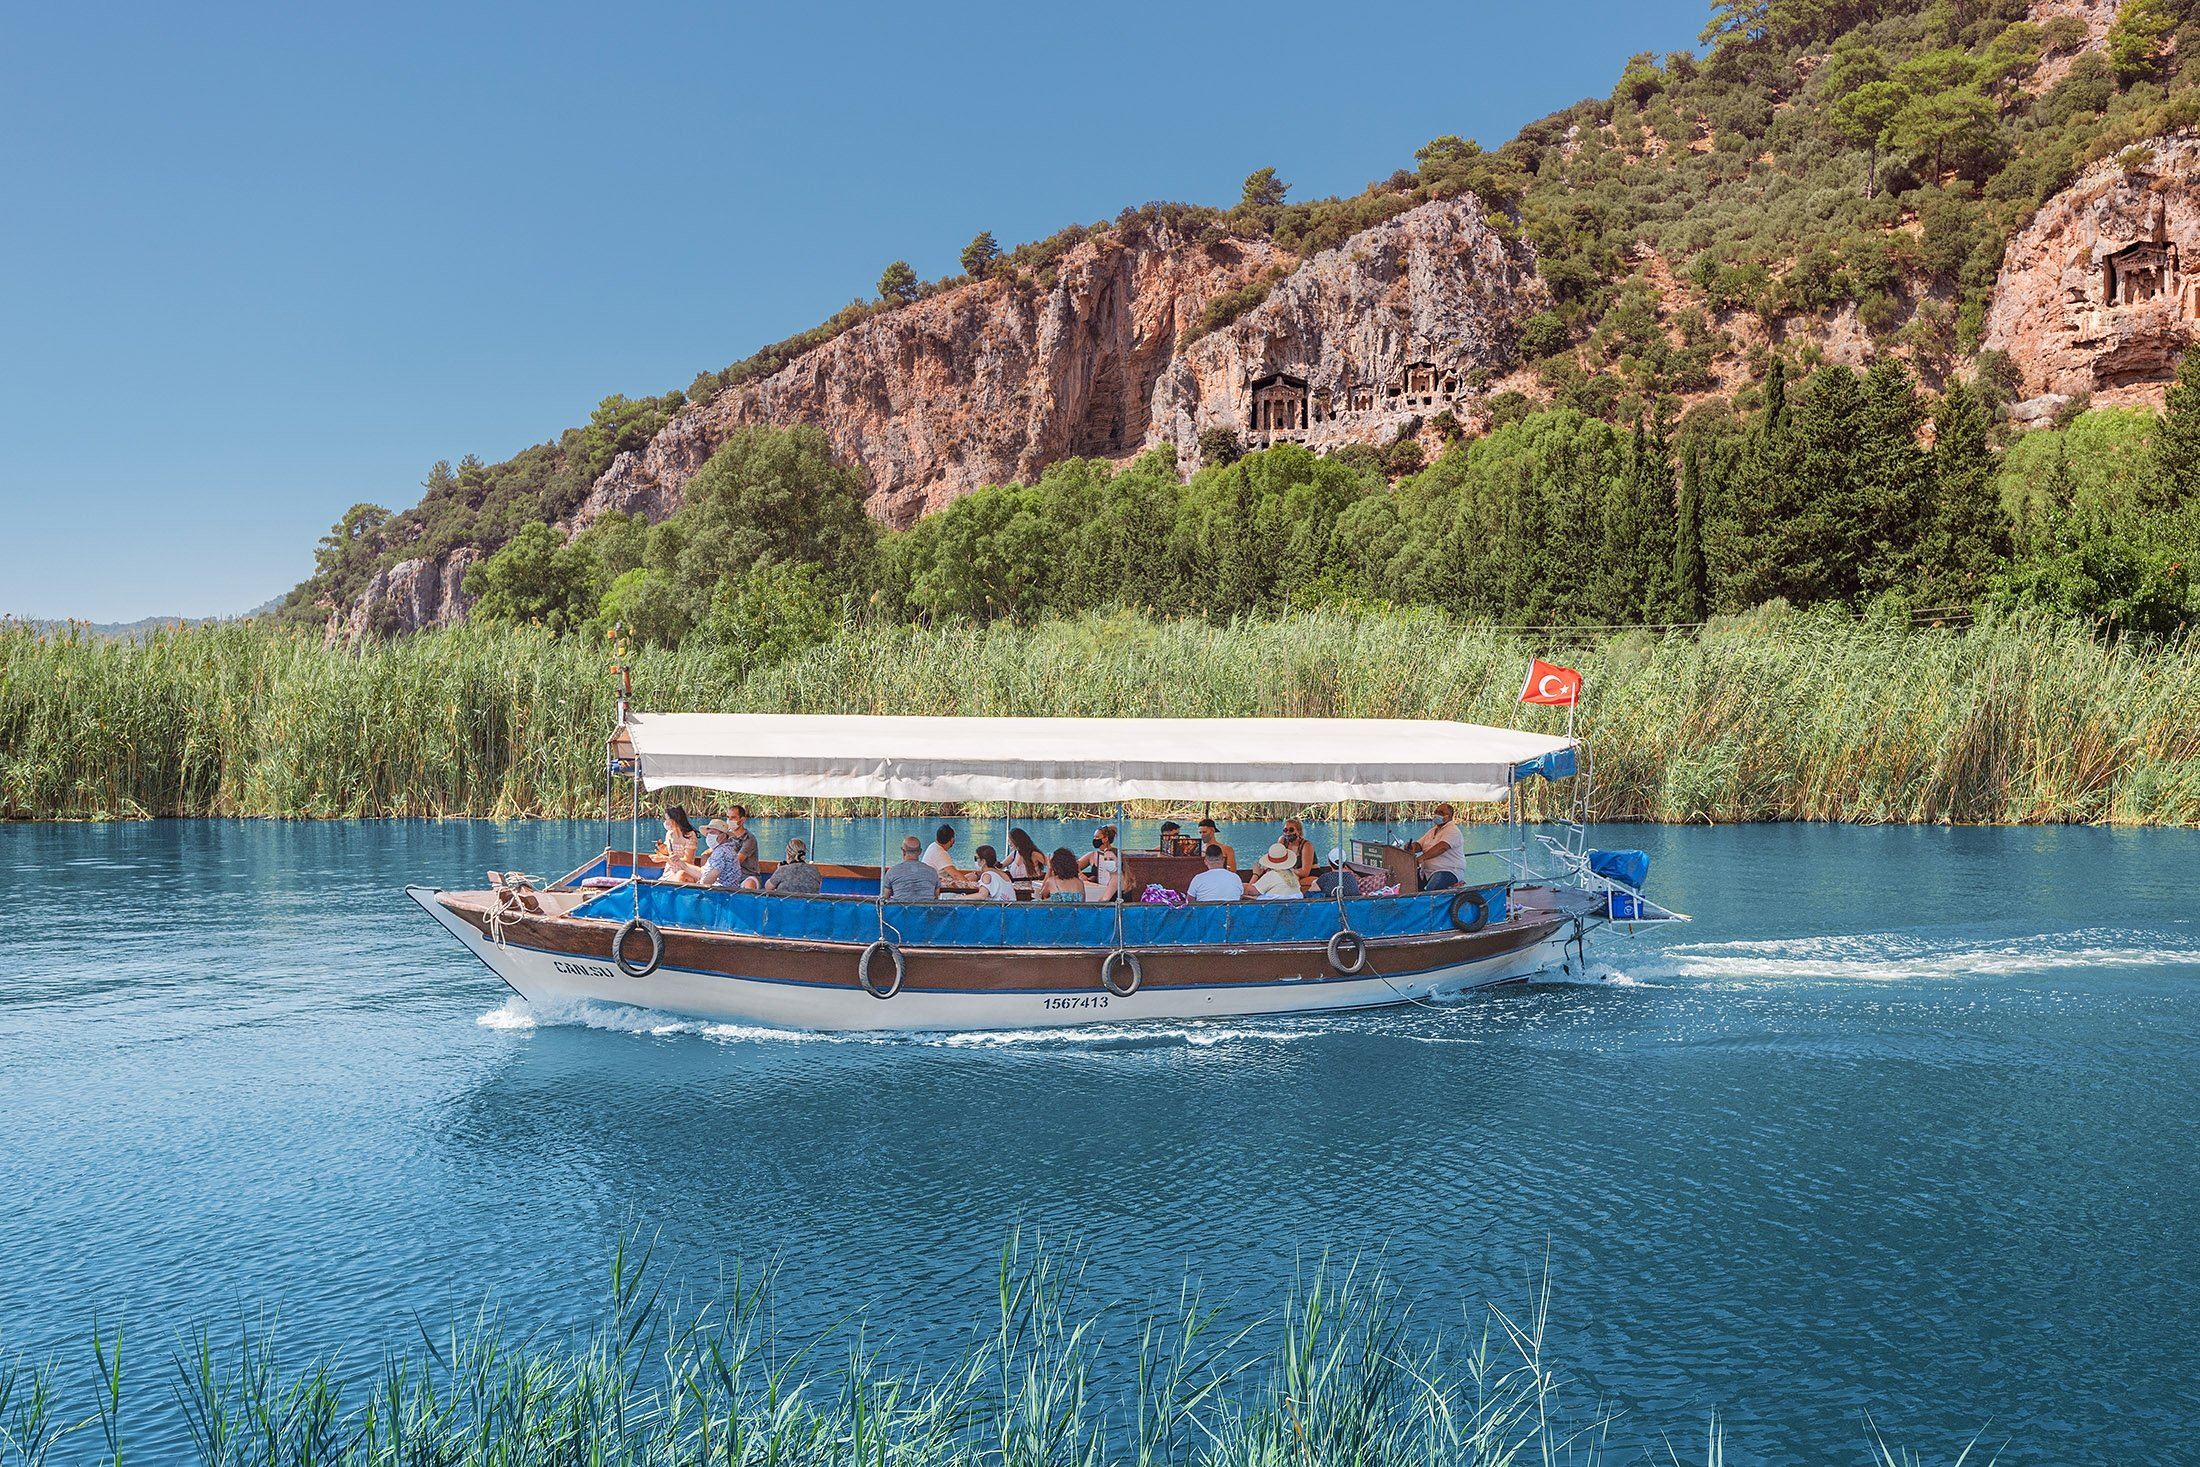 Cruise ships and ferry boats with Turkish flags transport tourists to the Dalyan river delta and the ancient city of Kaunos. (Shutterstock Photo)